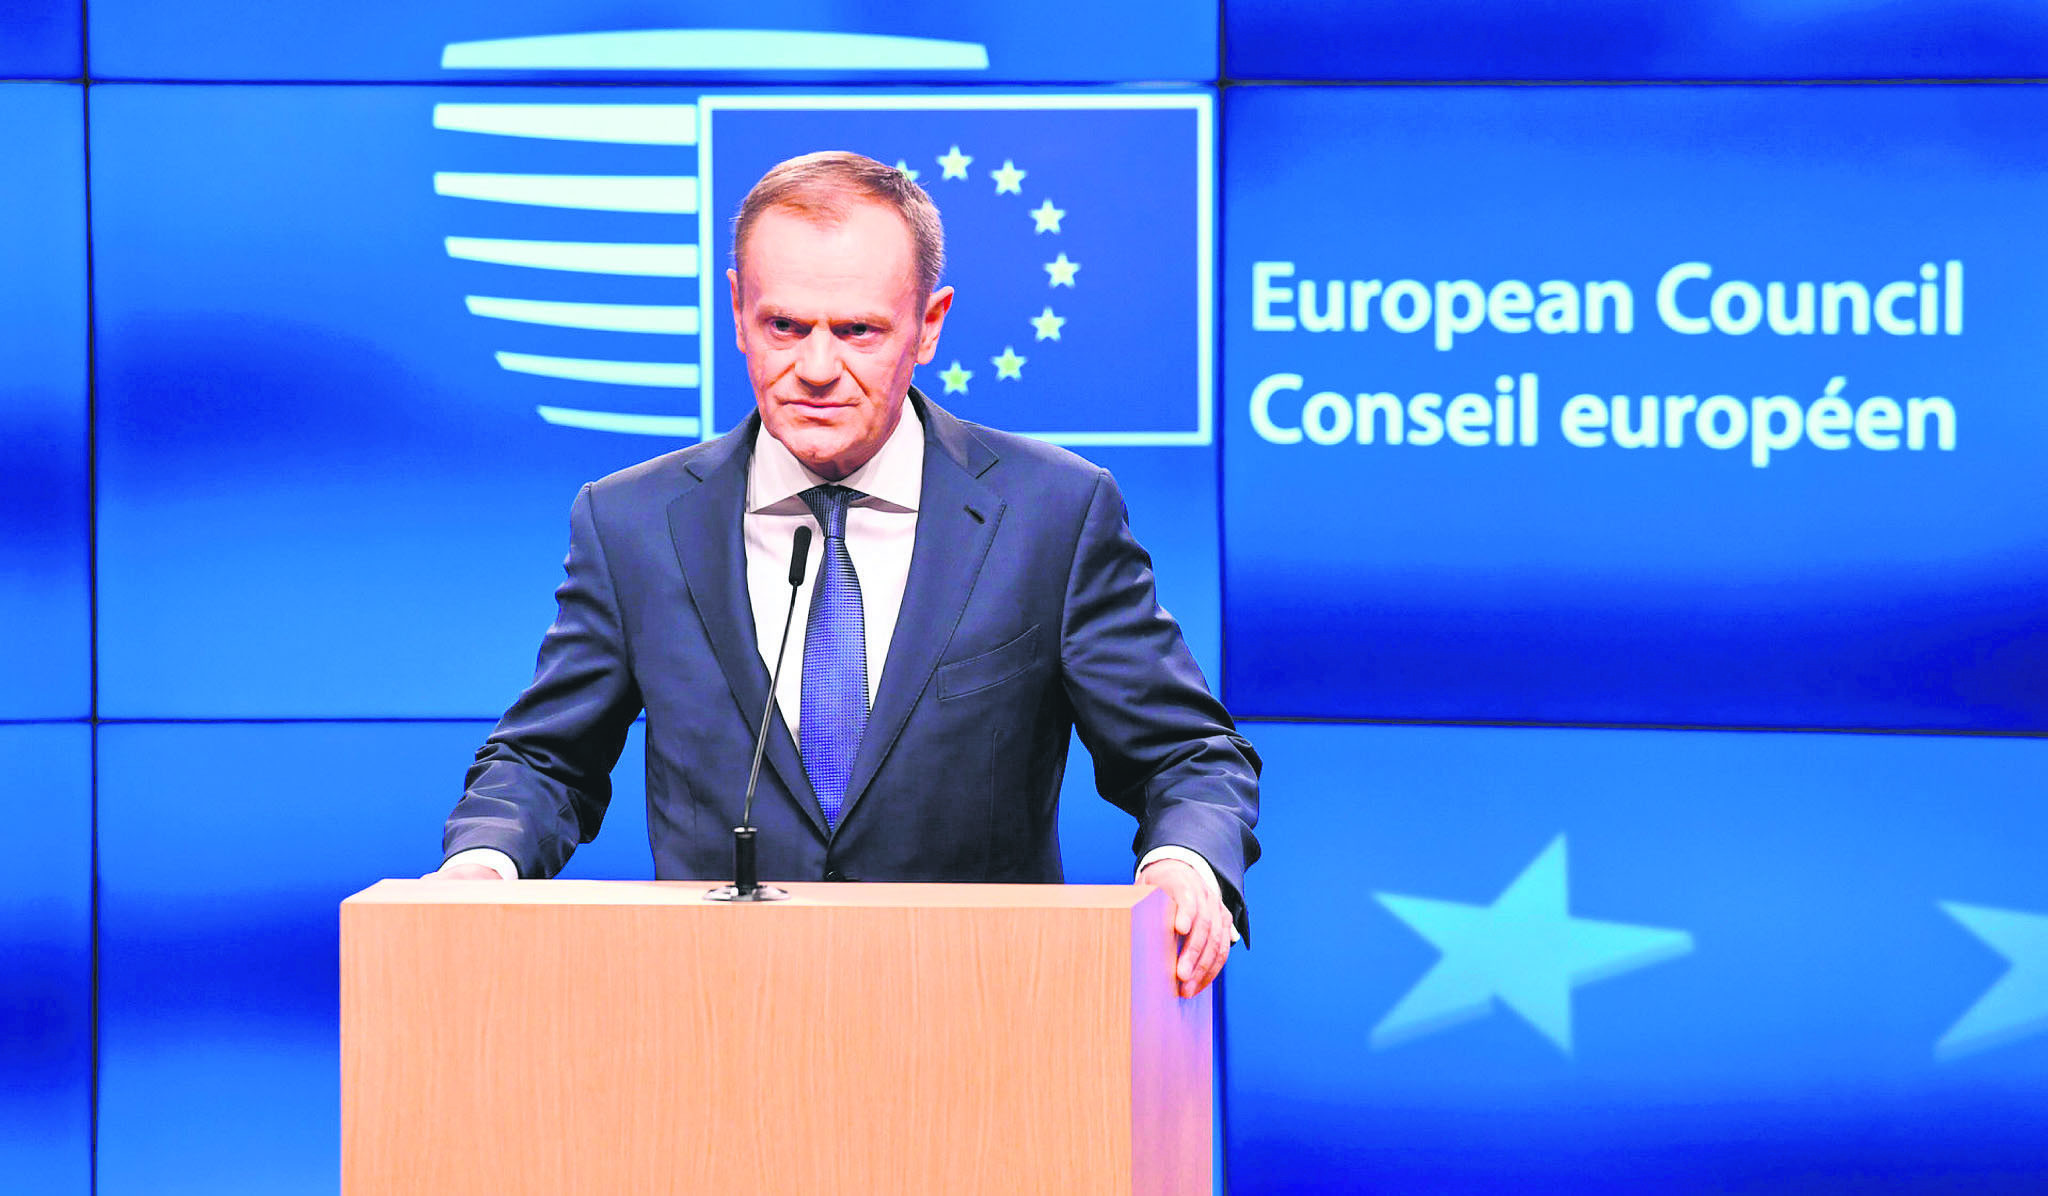 European Council President Tusk addresses a media conference at the Europa building, Brussels,  Dec. 8.